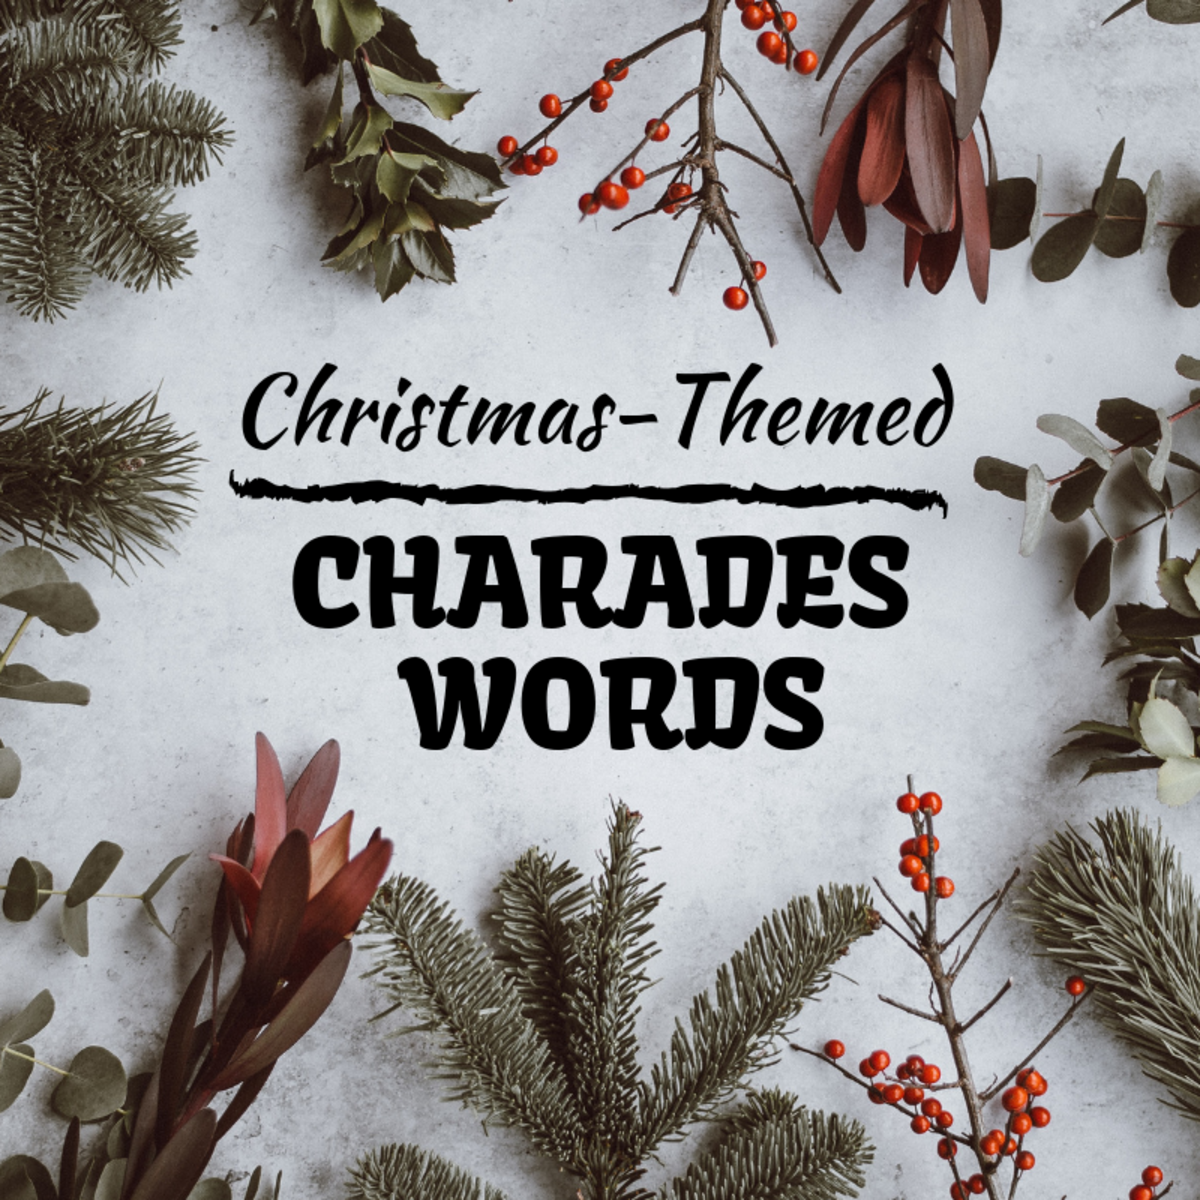 Charades is a great game to play with a theme in mind. Why not play some holiday-themed charades at your Christmas party or family gathering?